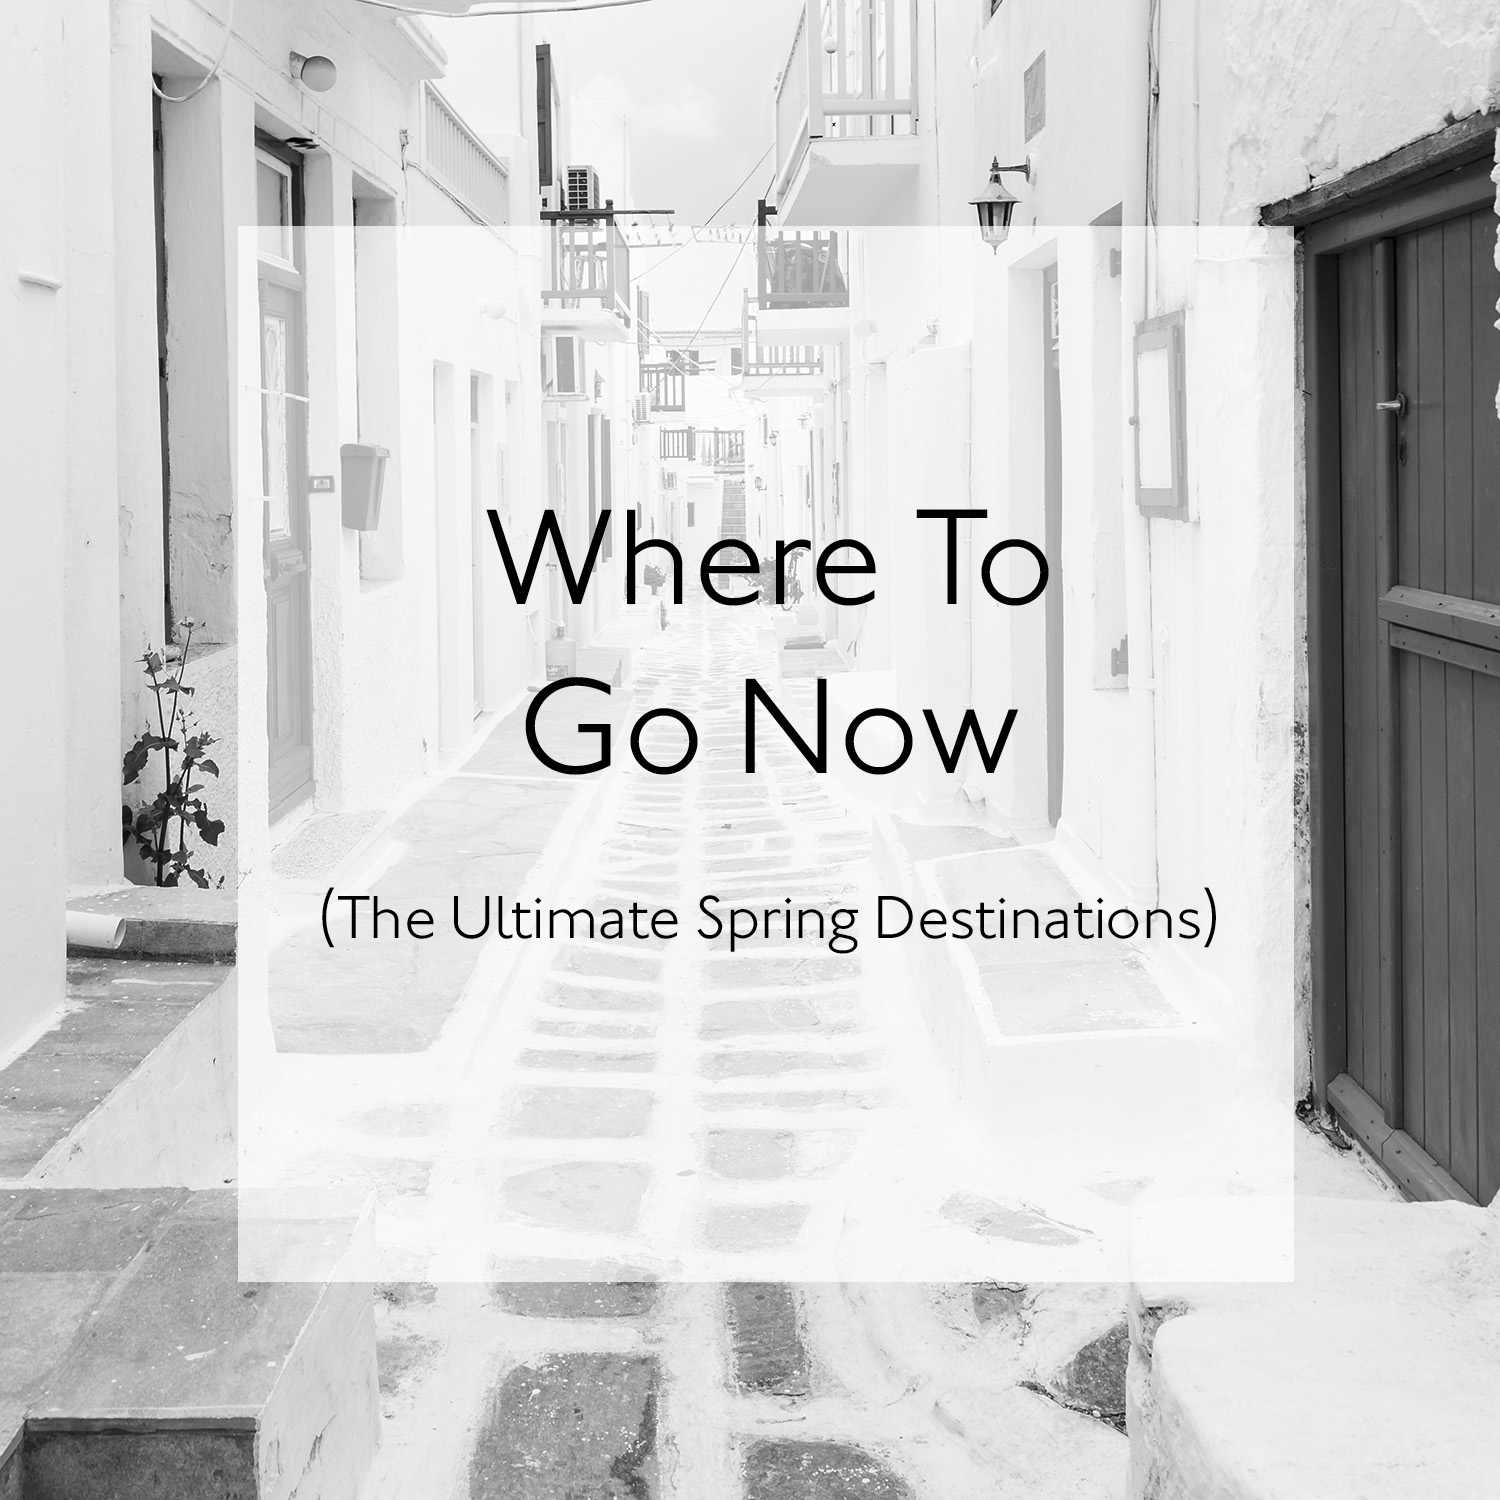 The Ultimate Spring Destinations